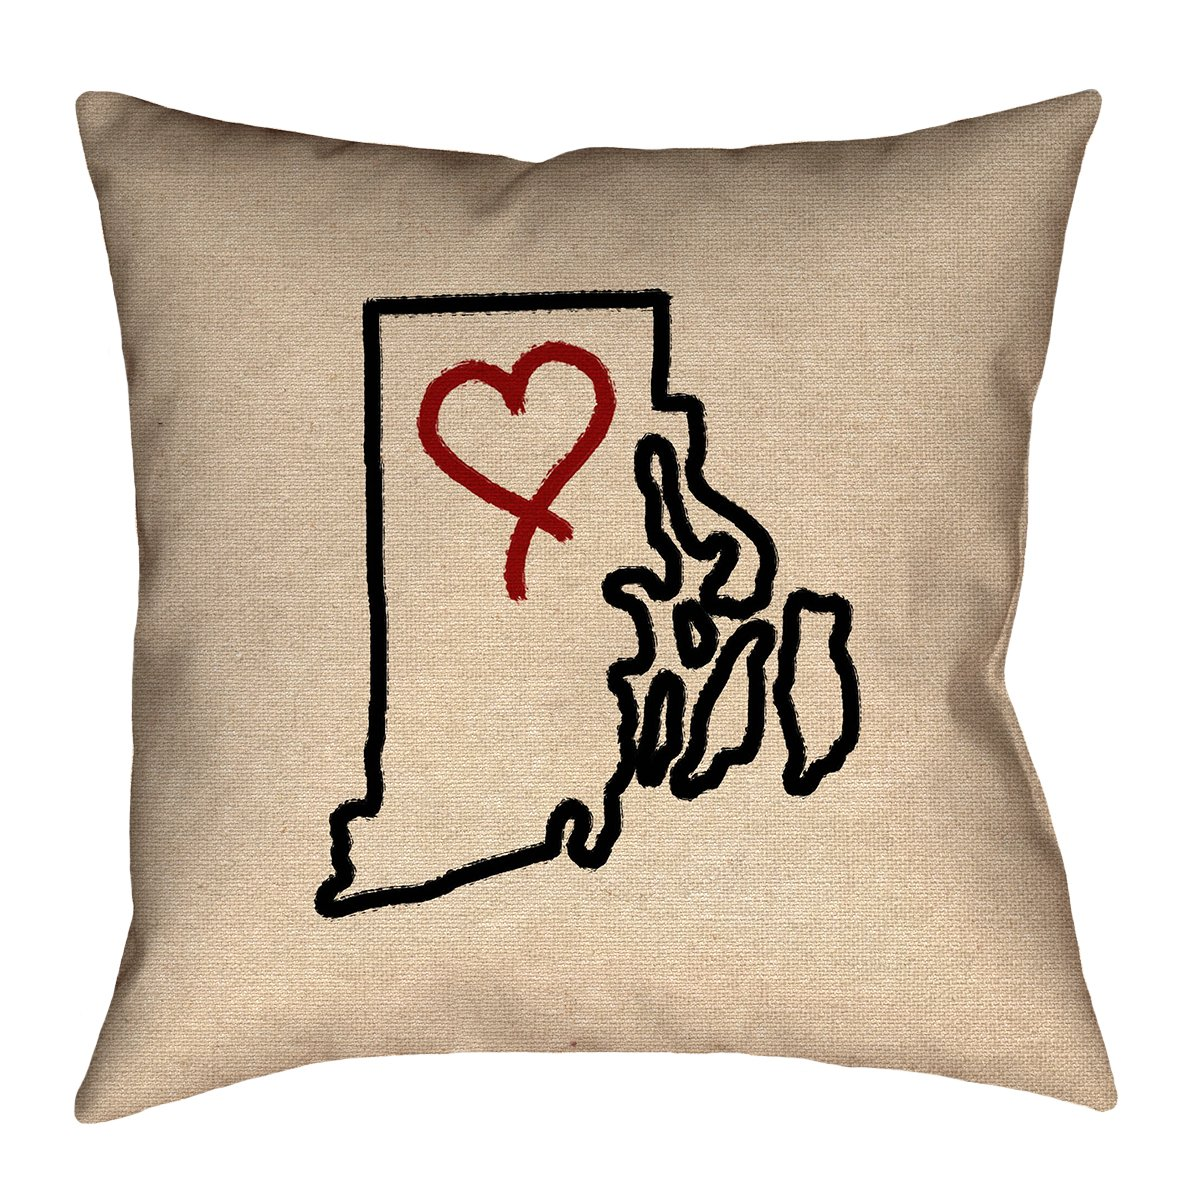 ArtVerse Katelyn Smith 20 x 20 Cotton Twill Double Sided Print with Concealed Zipper /& Insert Rhode Island Love Pillow